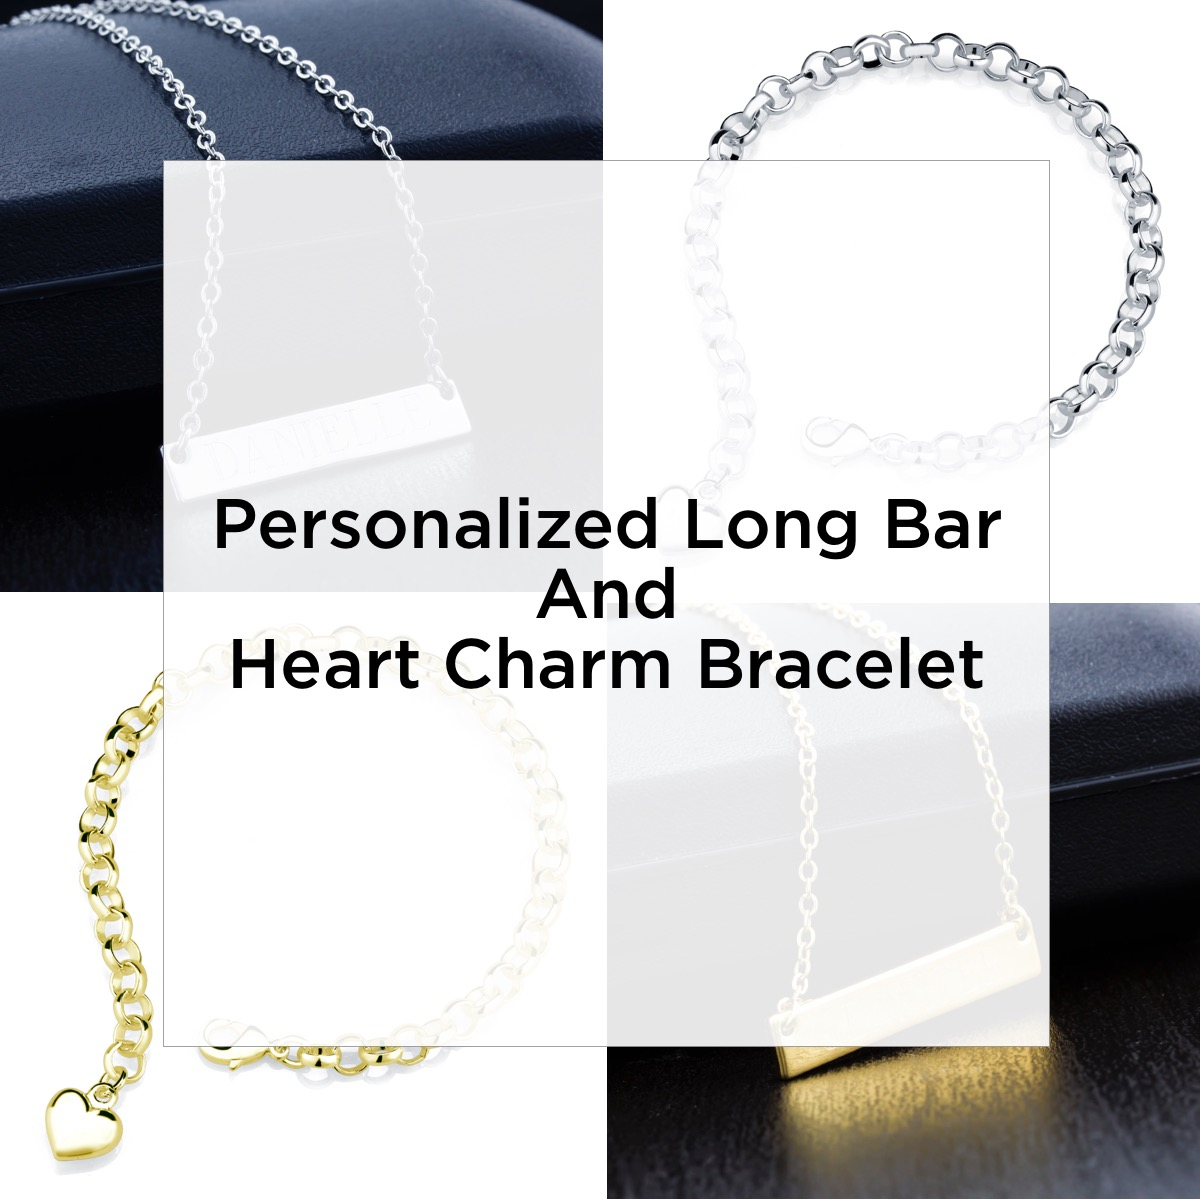 Personalized Long Bar And Heart Charm Bracelet